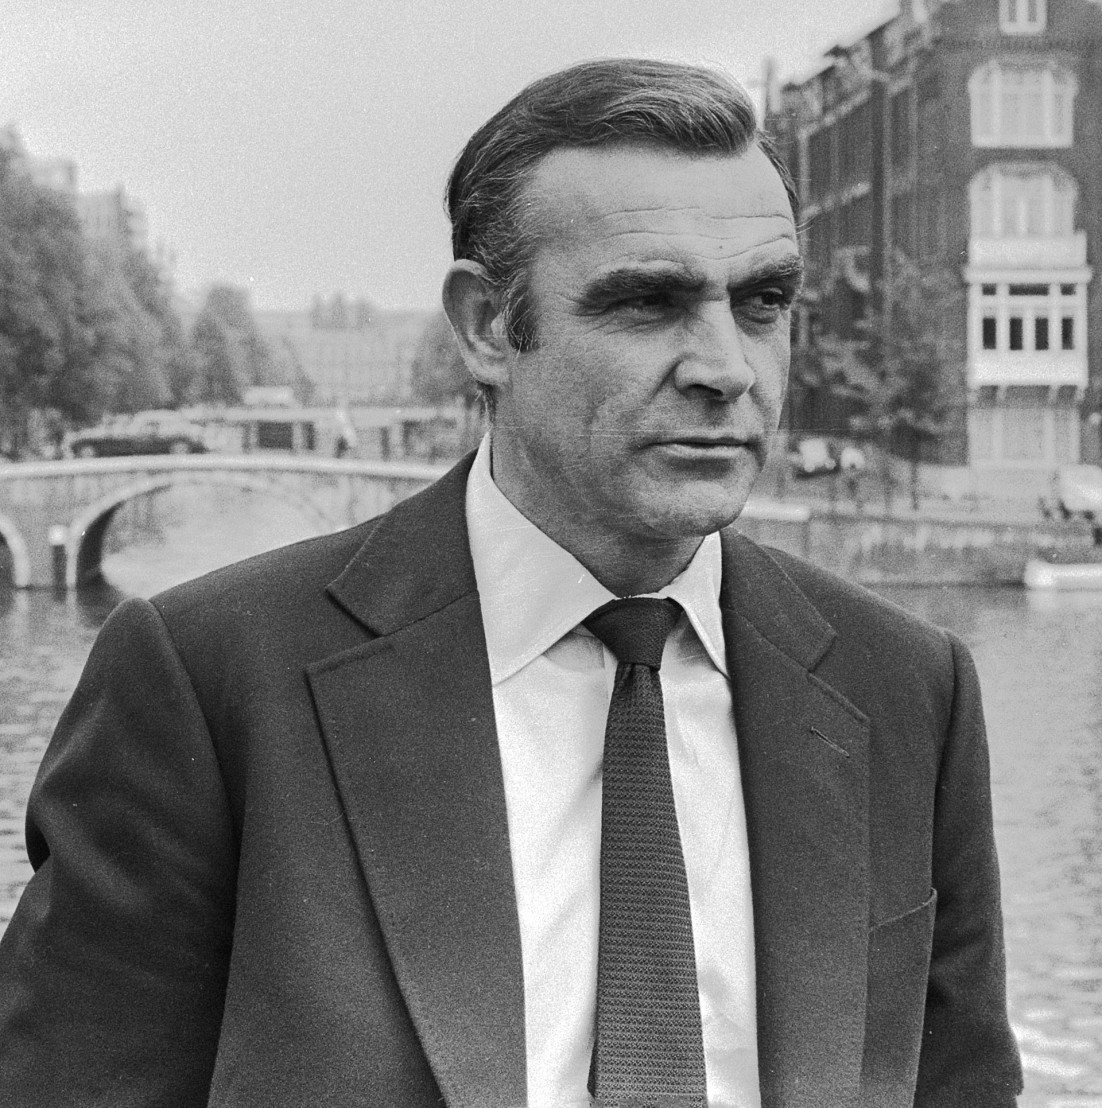 Sean_Connery_as_James_Bond_(1971,_cropped)